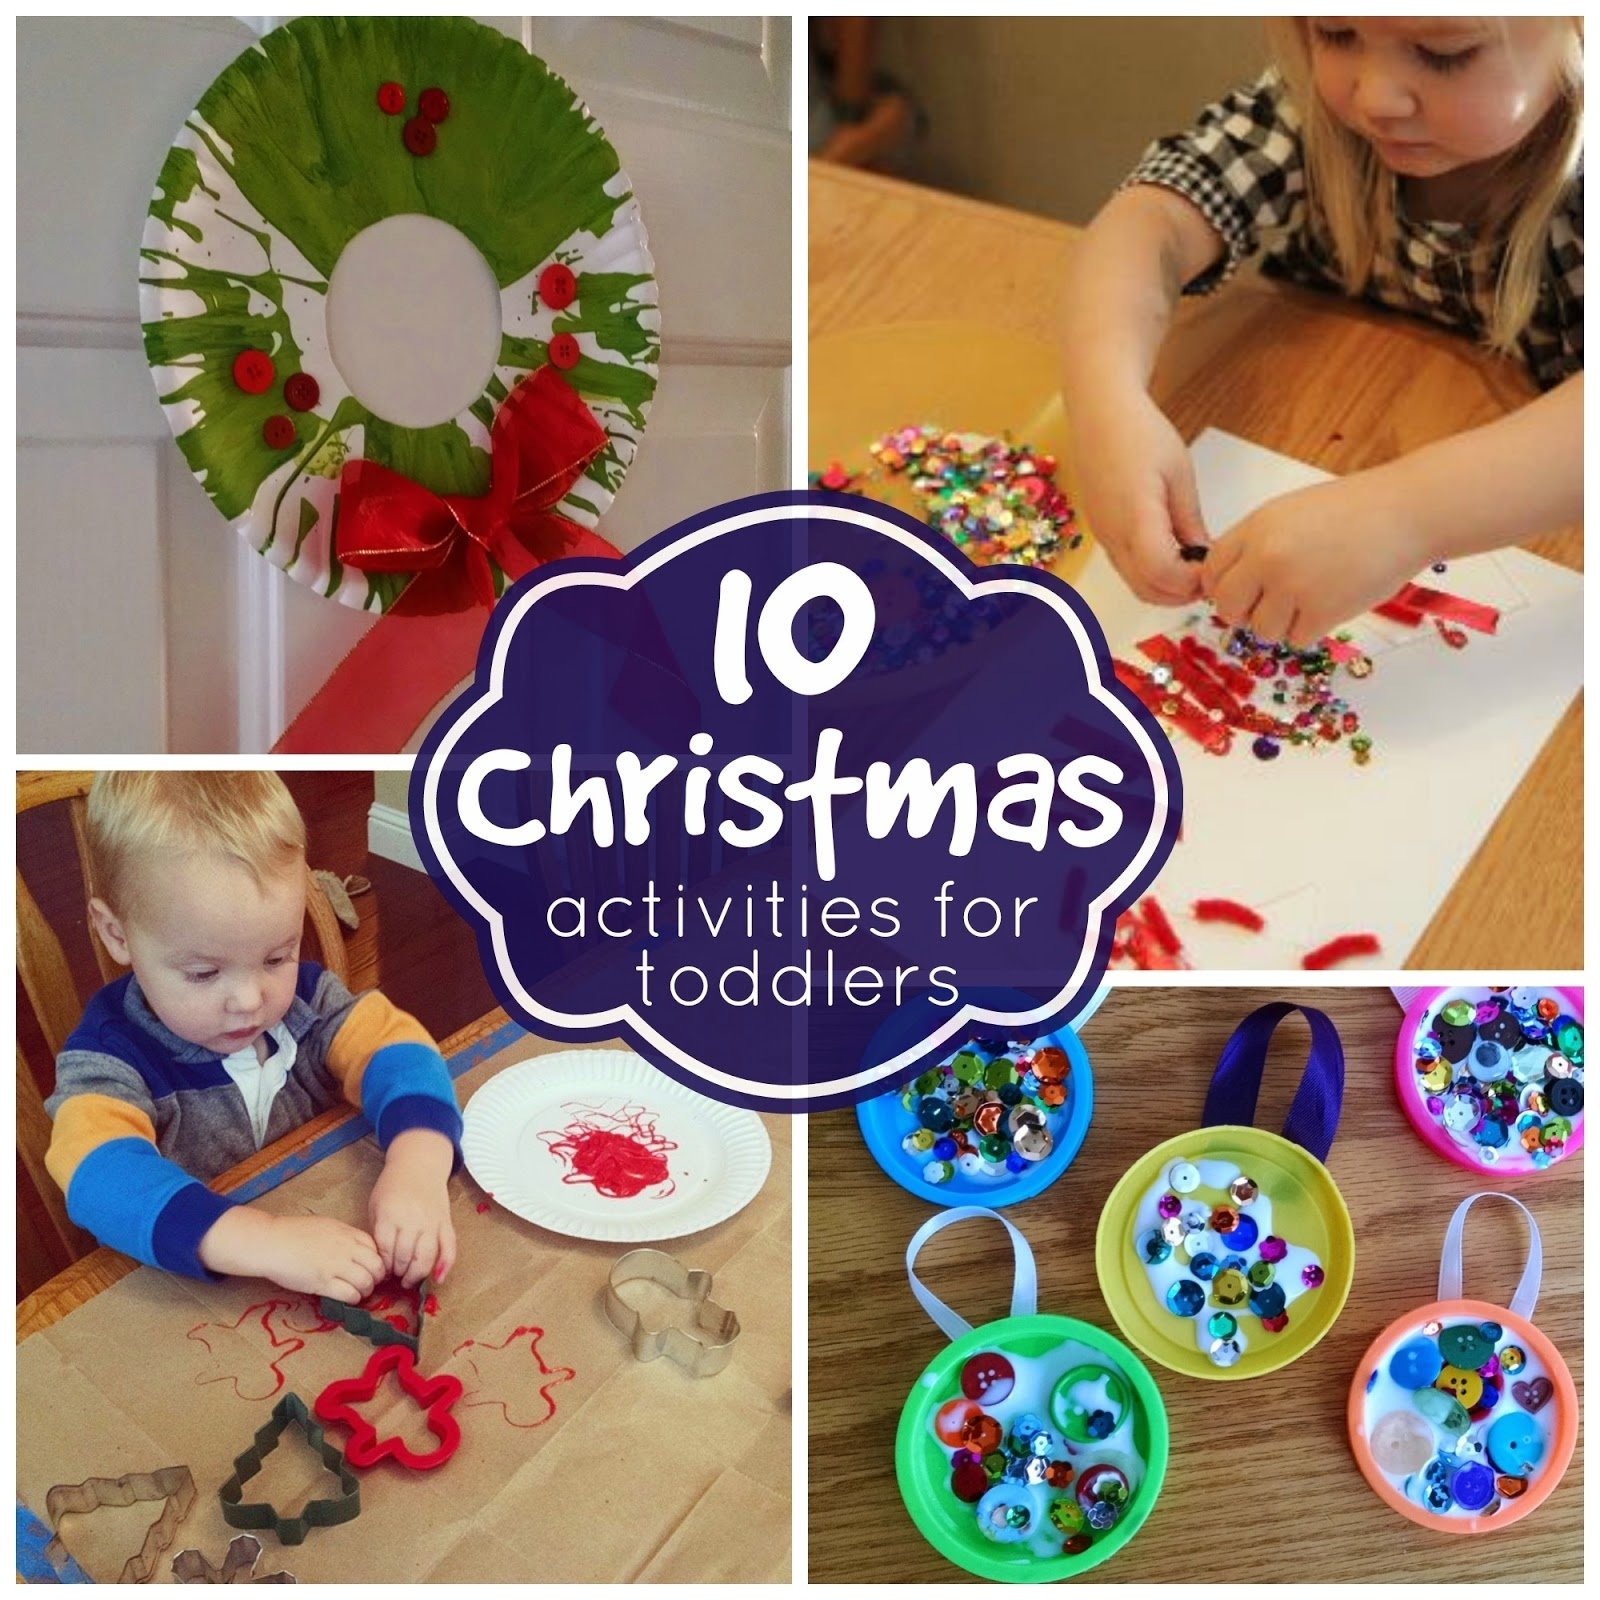 10 Ideal Christmas Activity Ideas For Kids activities for christmas for toddlers fun for christmas 2020